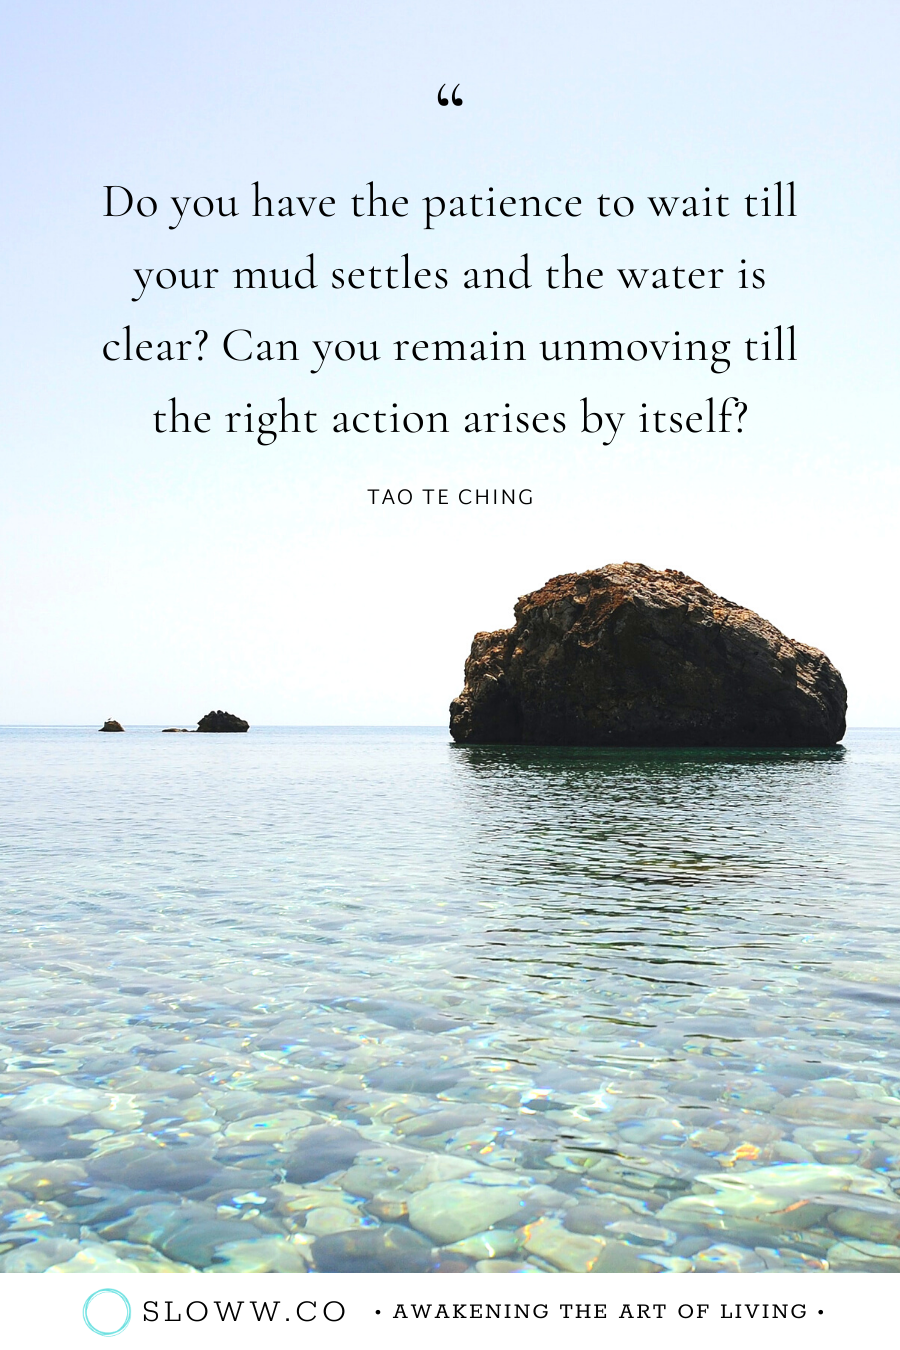 Do you have the patience to wait till your mud settles and the water is clear? Can you remain unmoving till the right action arises by itself? Tao Te Ching Lao Tzu Quote | #taoteching #taoquotes #taotechingquotes #laotzu #laotzuquotes #laozi #nonaction #enlightenment #awakening #spiritualgrowth #oneness #intentionalliving #consciousliving #mindfulliving